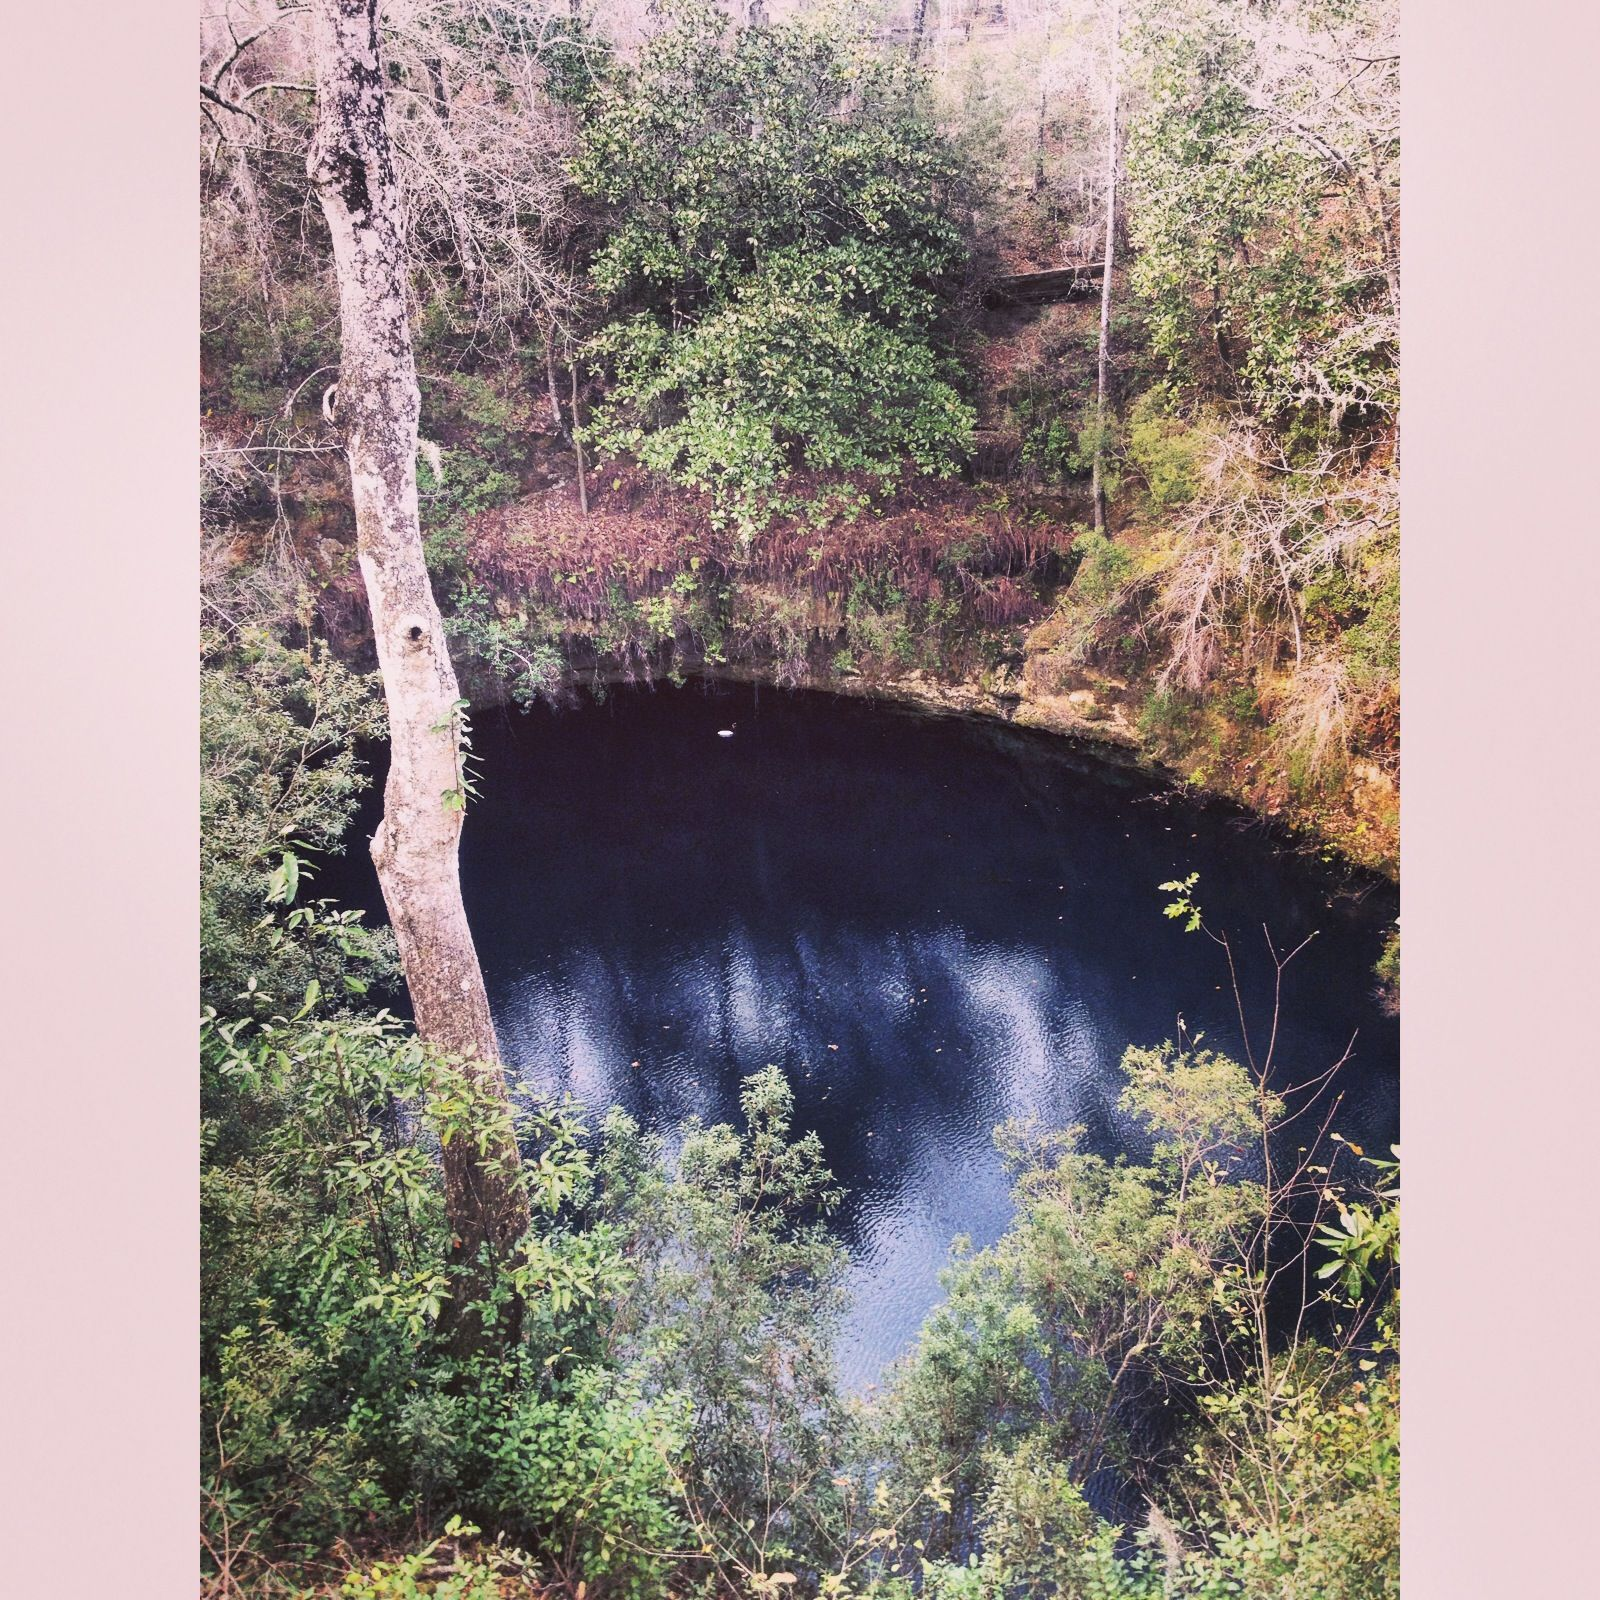 Leon Sinks Geological Area, Leon County, Florida - Take the tree lined  trail to